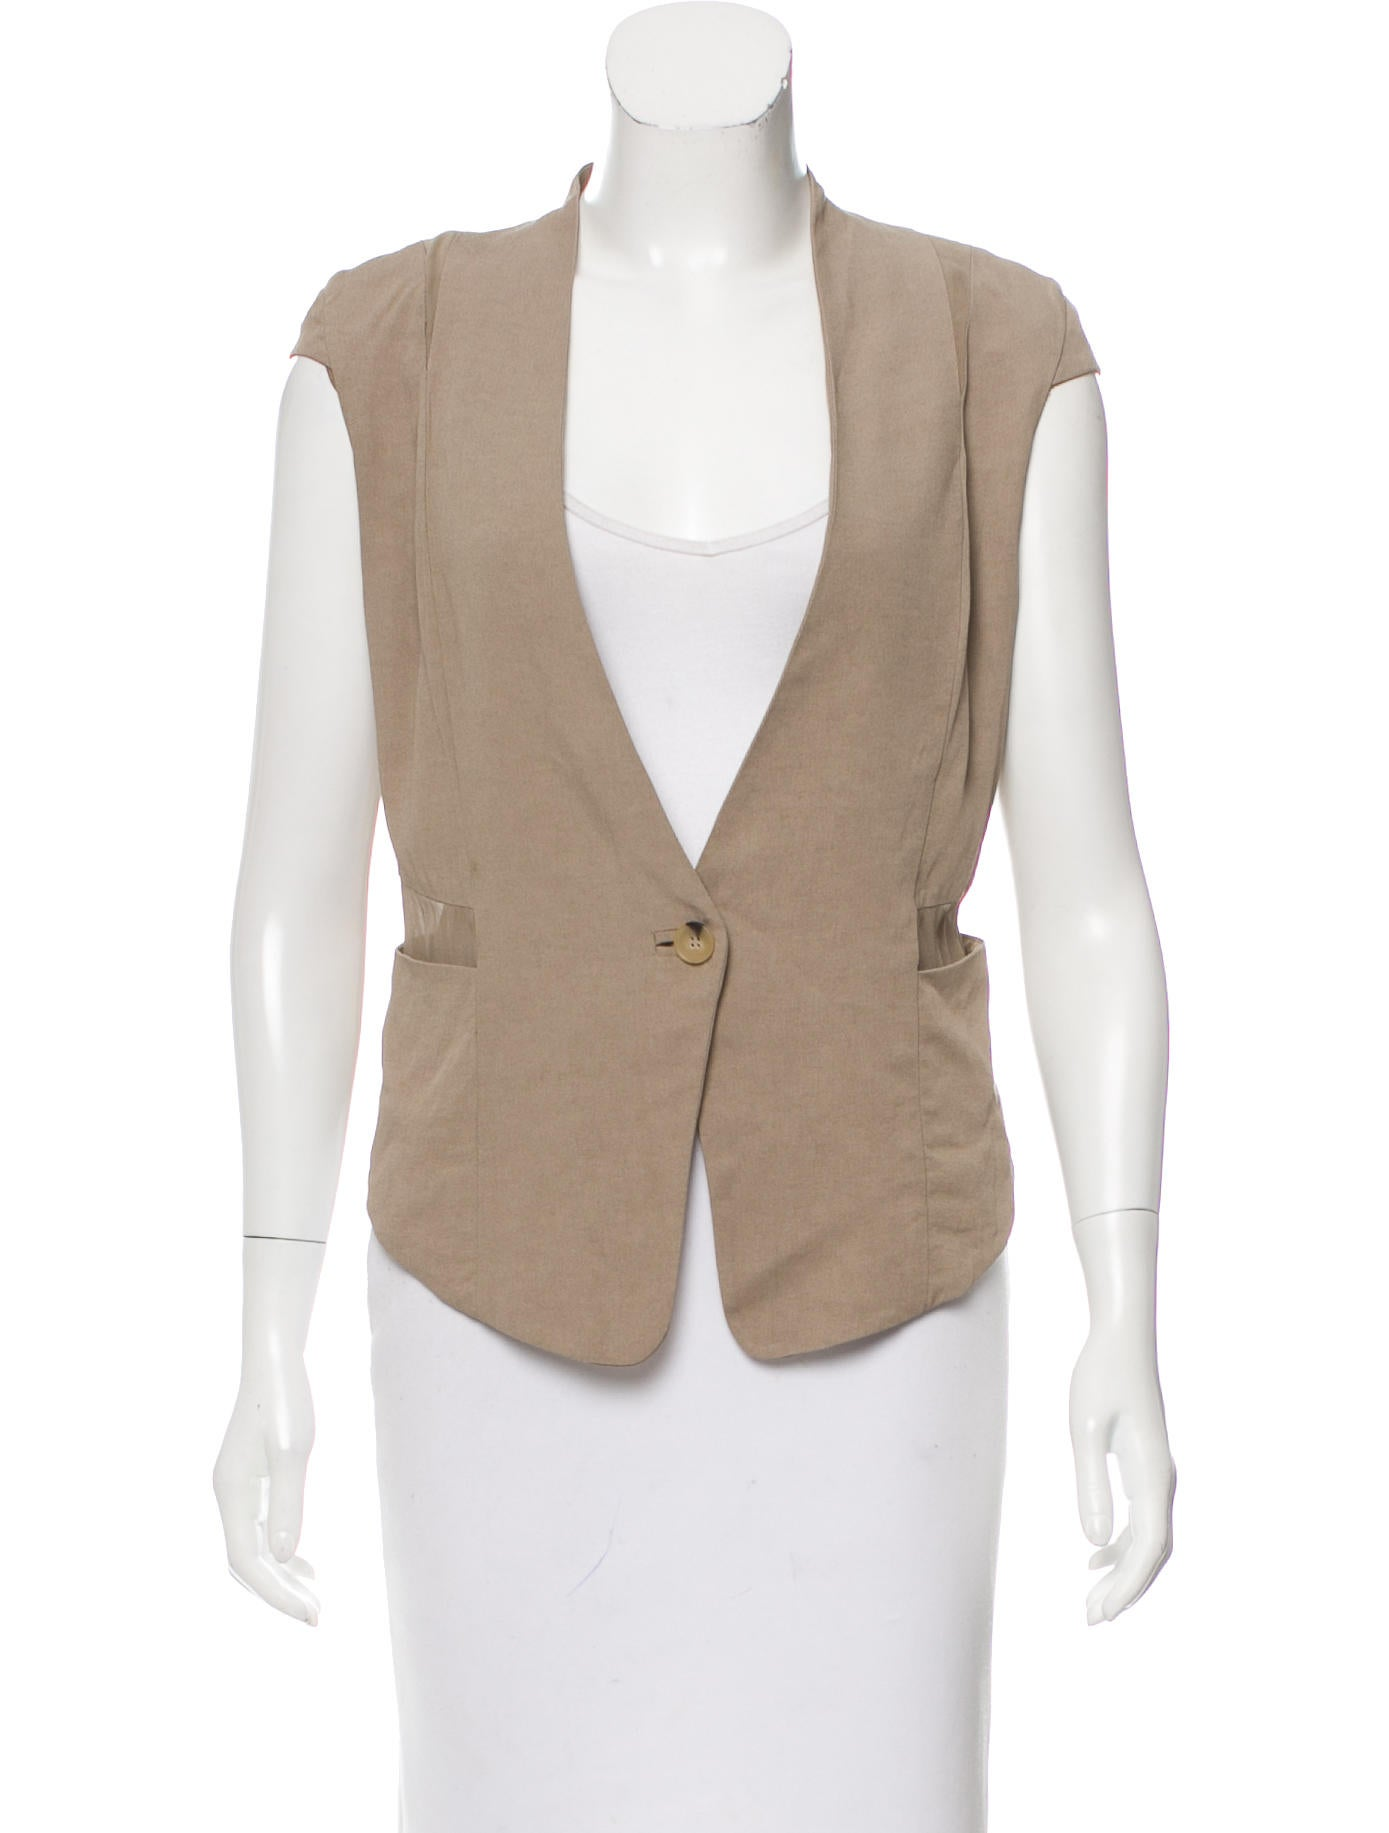 Shop online for Men's Sweater Vests at janydo.ml Find V-neck & zip front styles in wool & mixed media. Free Shipping. Free Returns. All the time.